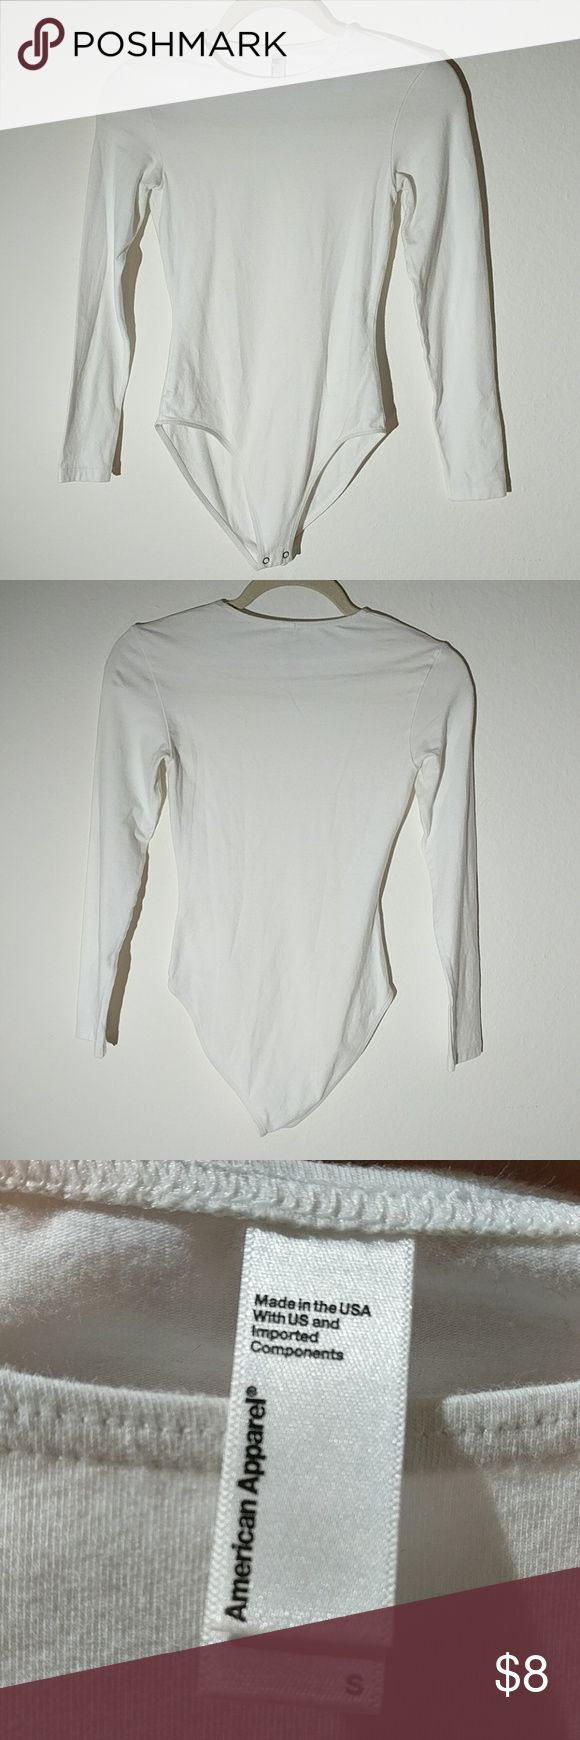 American apparel white long sleeve bodysuit Size small  No snags or stains. American Apparel Other